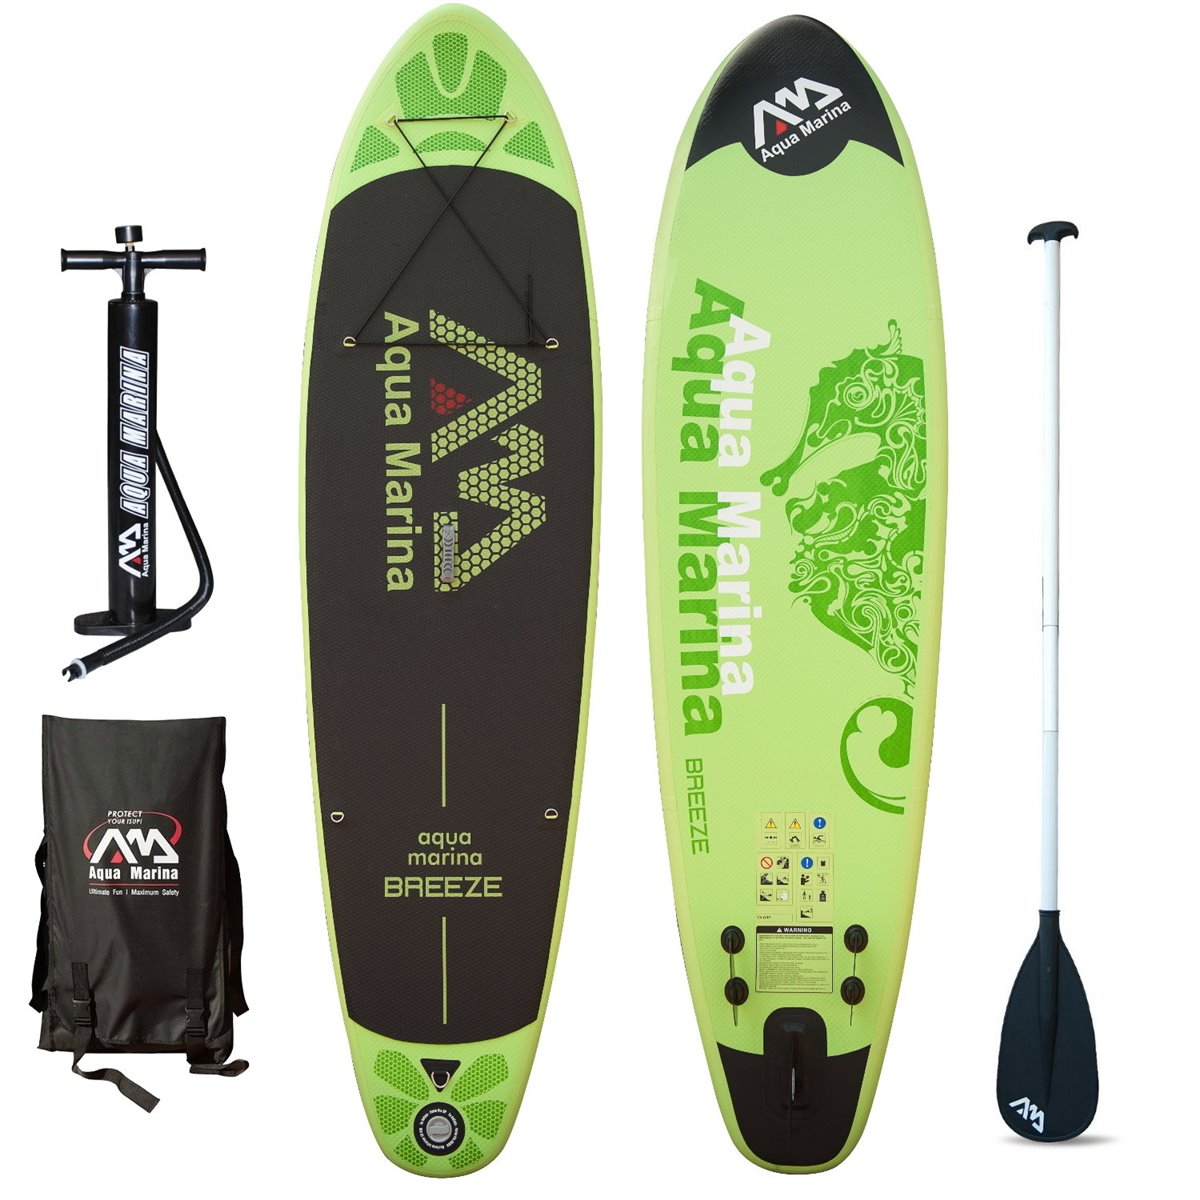 BREEZE INFLATABLE SUP BOARD PACKAGE W/PADDLE AQUA MARINA 2017